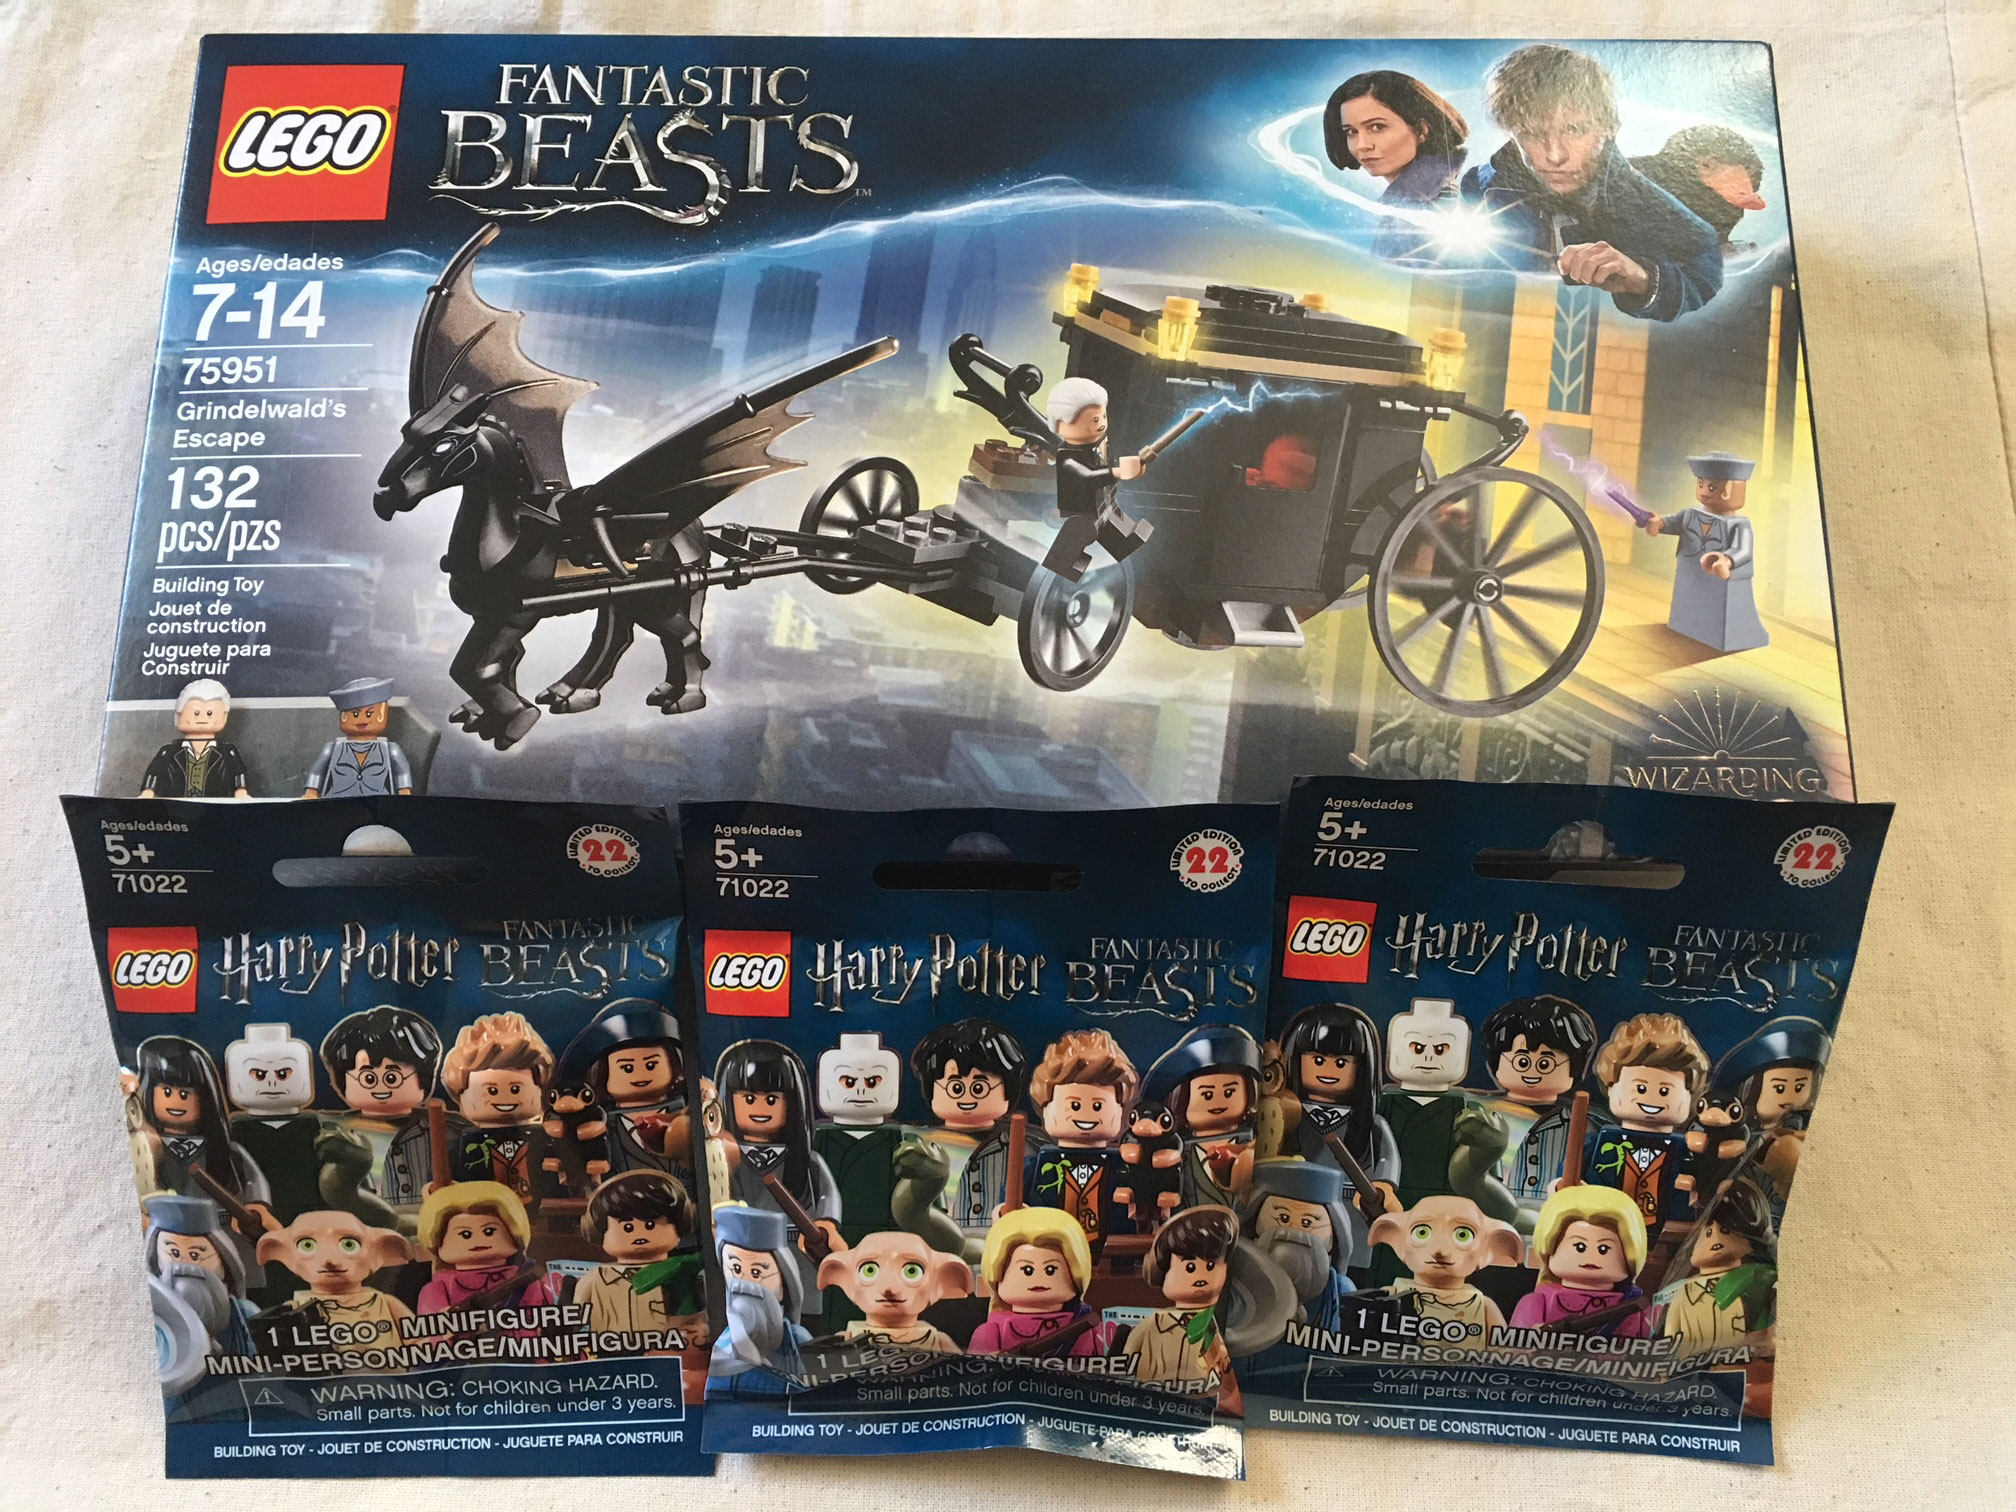 LEGO Grindelwald's Escape set with 3 LEGO minifigures mystery packs